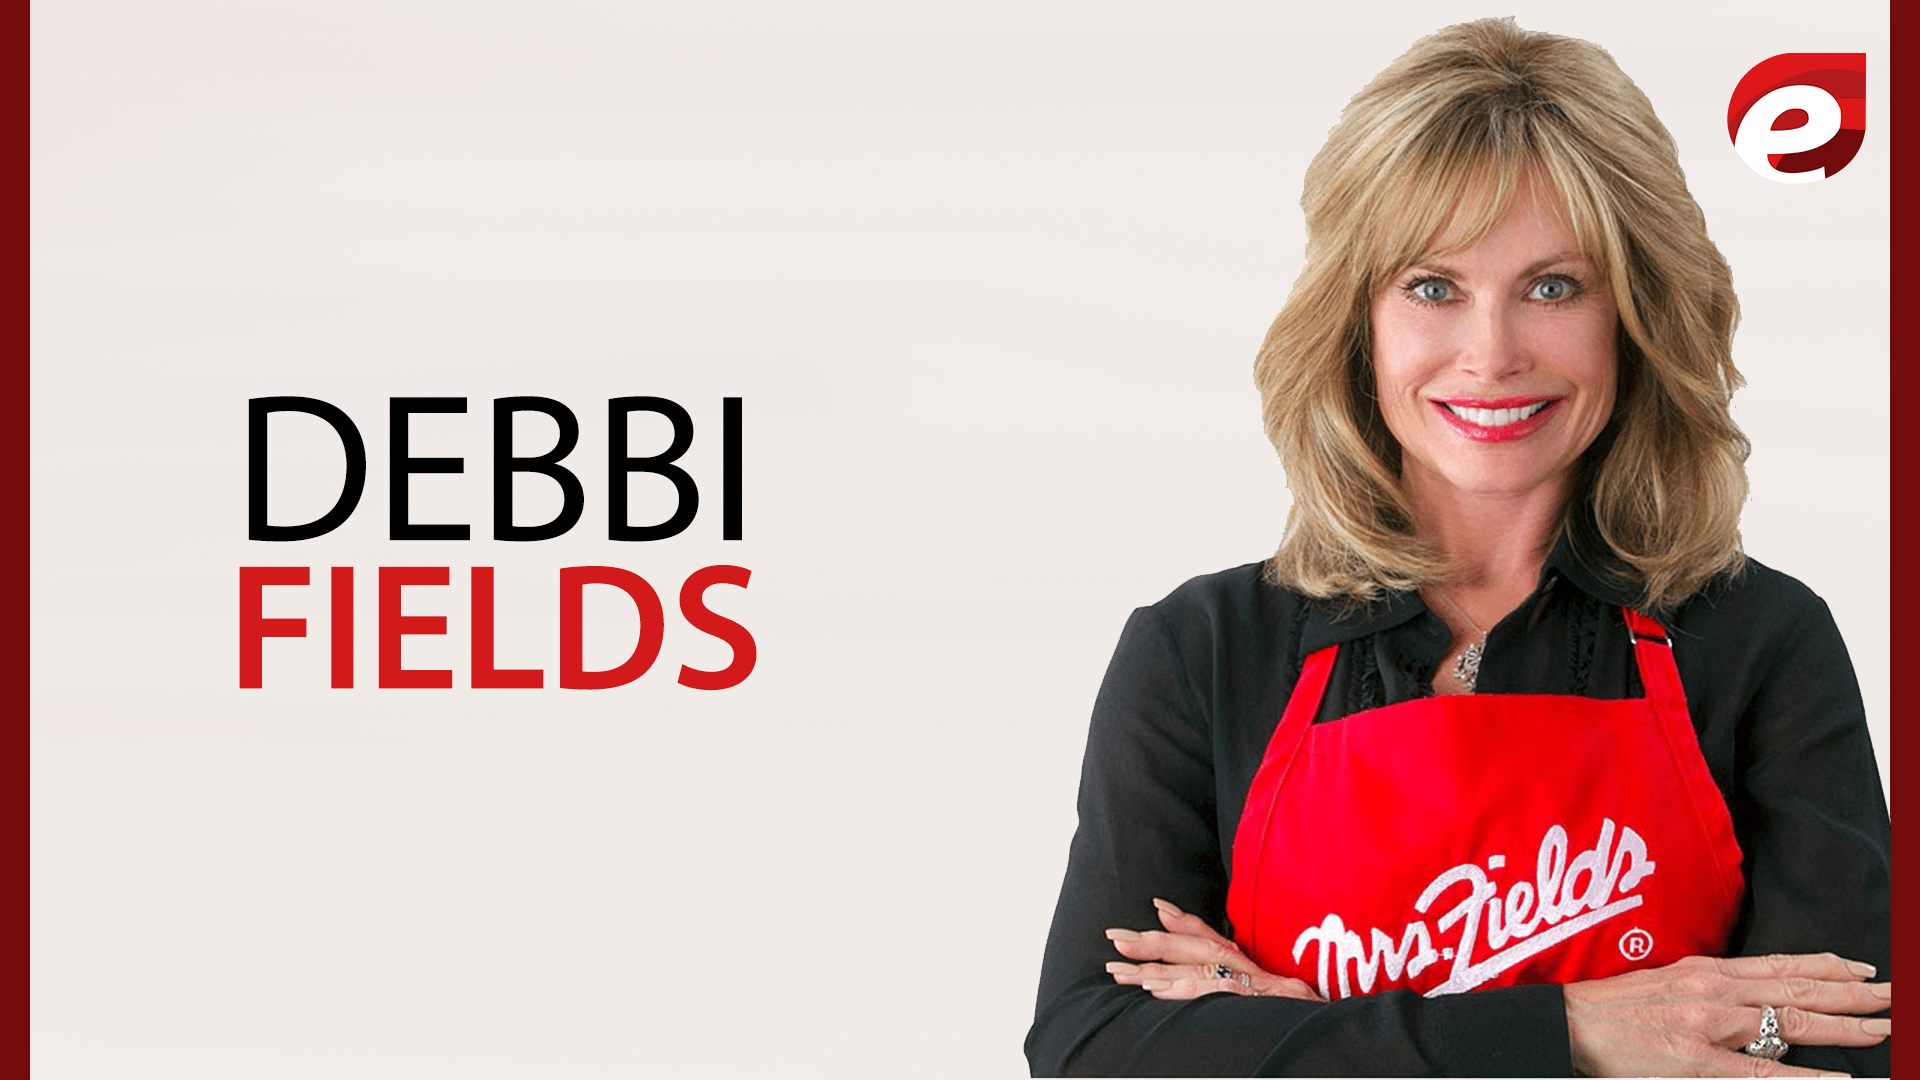 15 most powerful women of 2017- Debbi fields